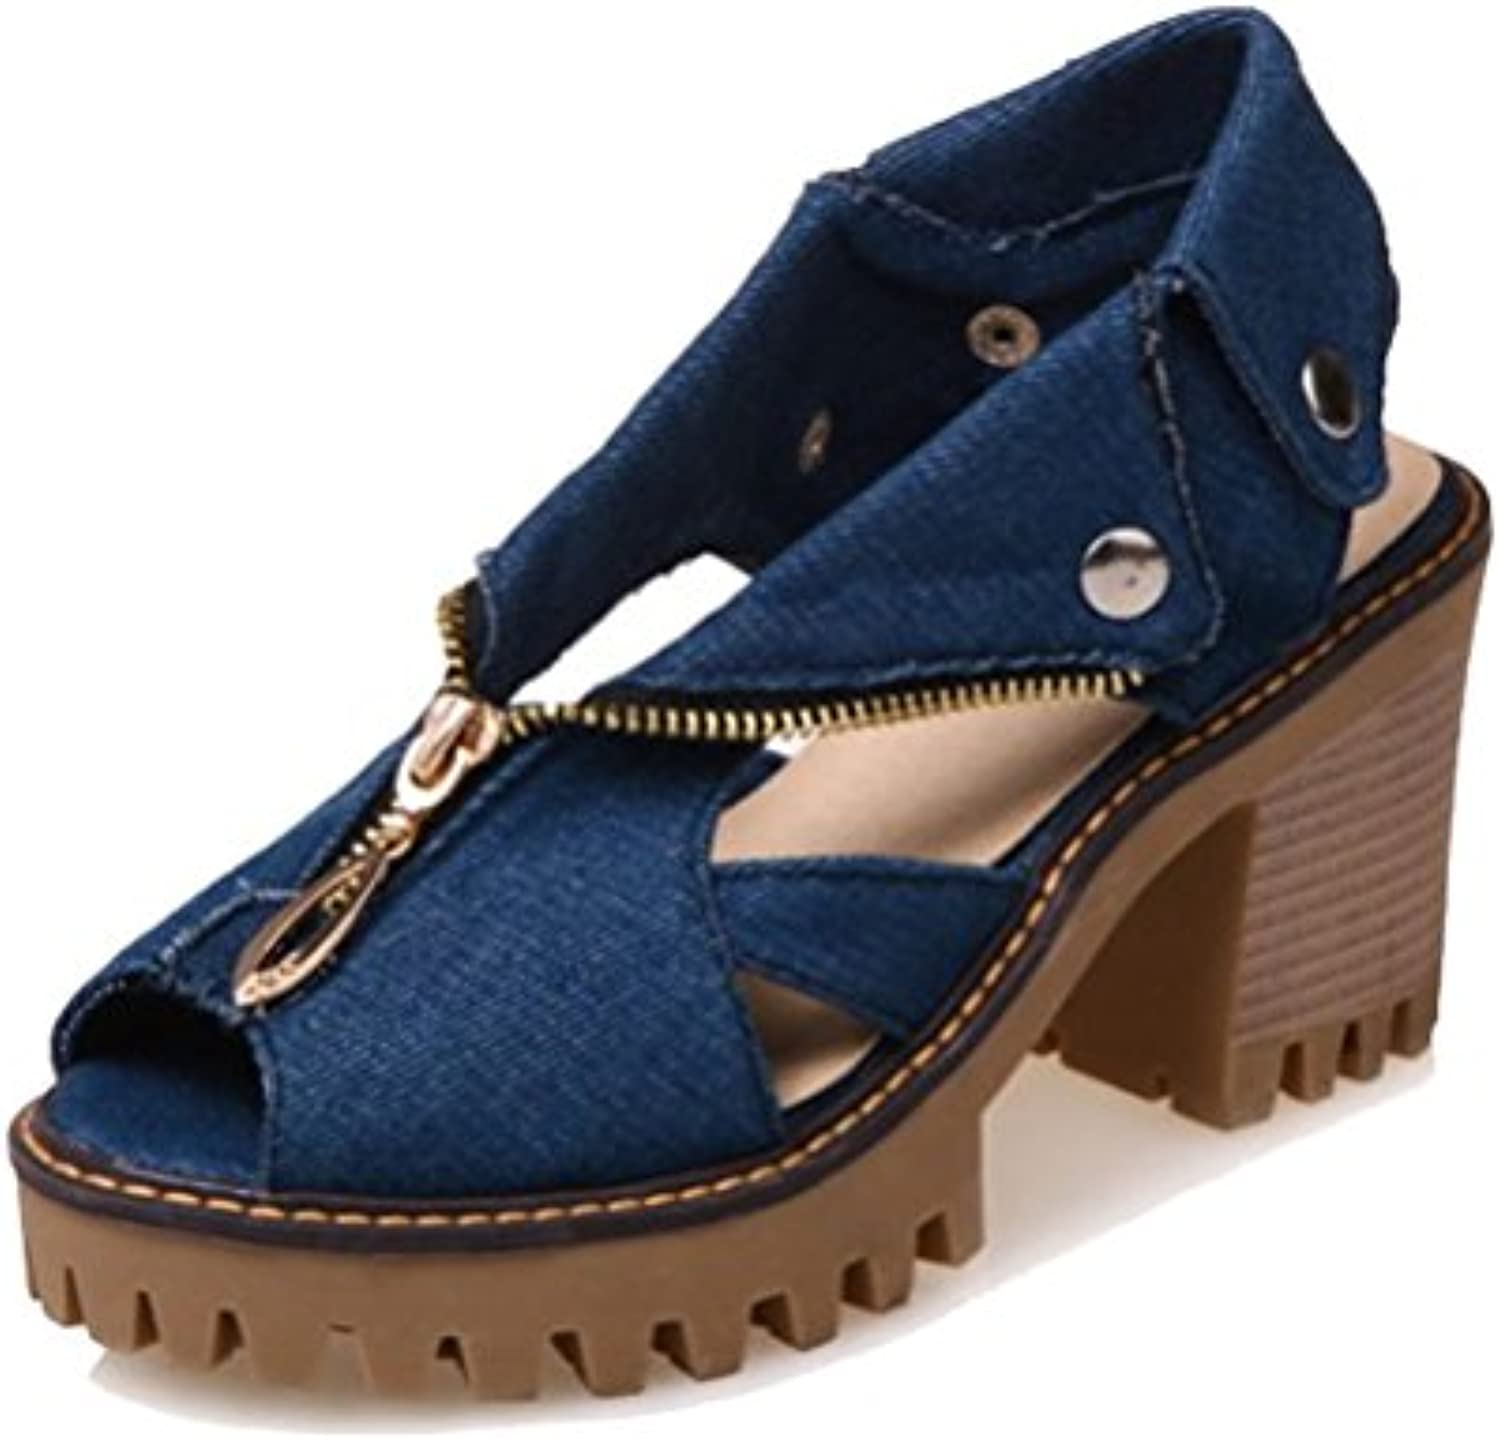 34b9b6763112 HiTime Women s Washable Denim Peep Peep Peep Toe Fashion Sandals 8 cm High Block  Heels Zipper